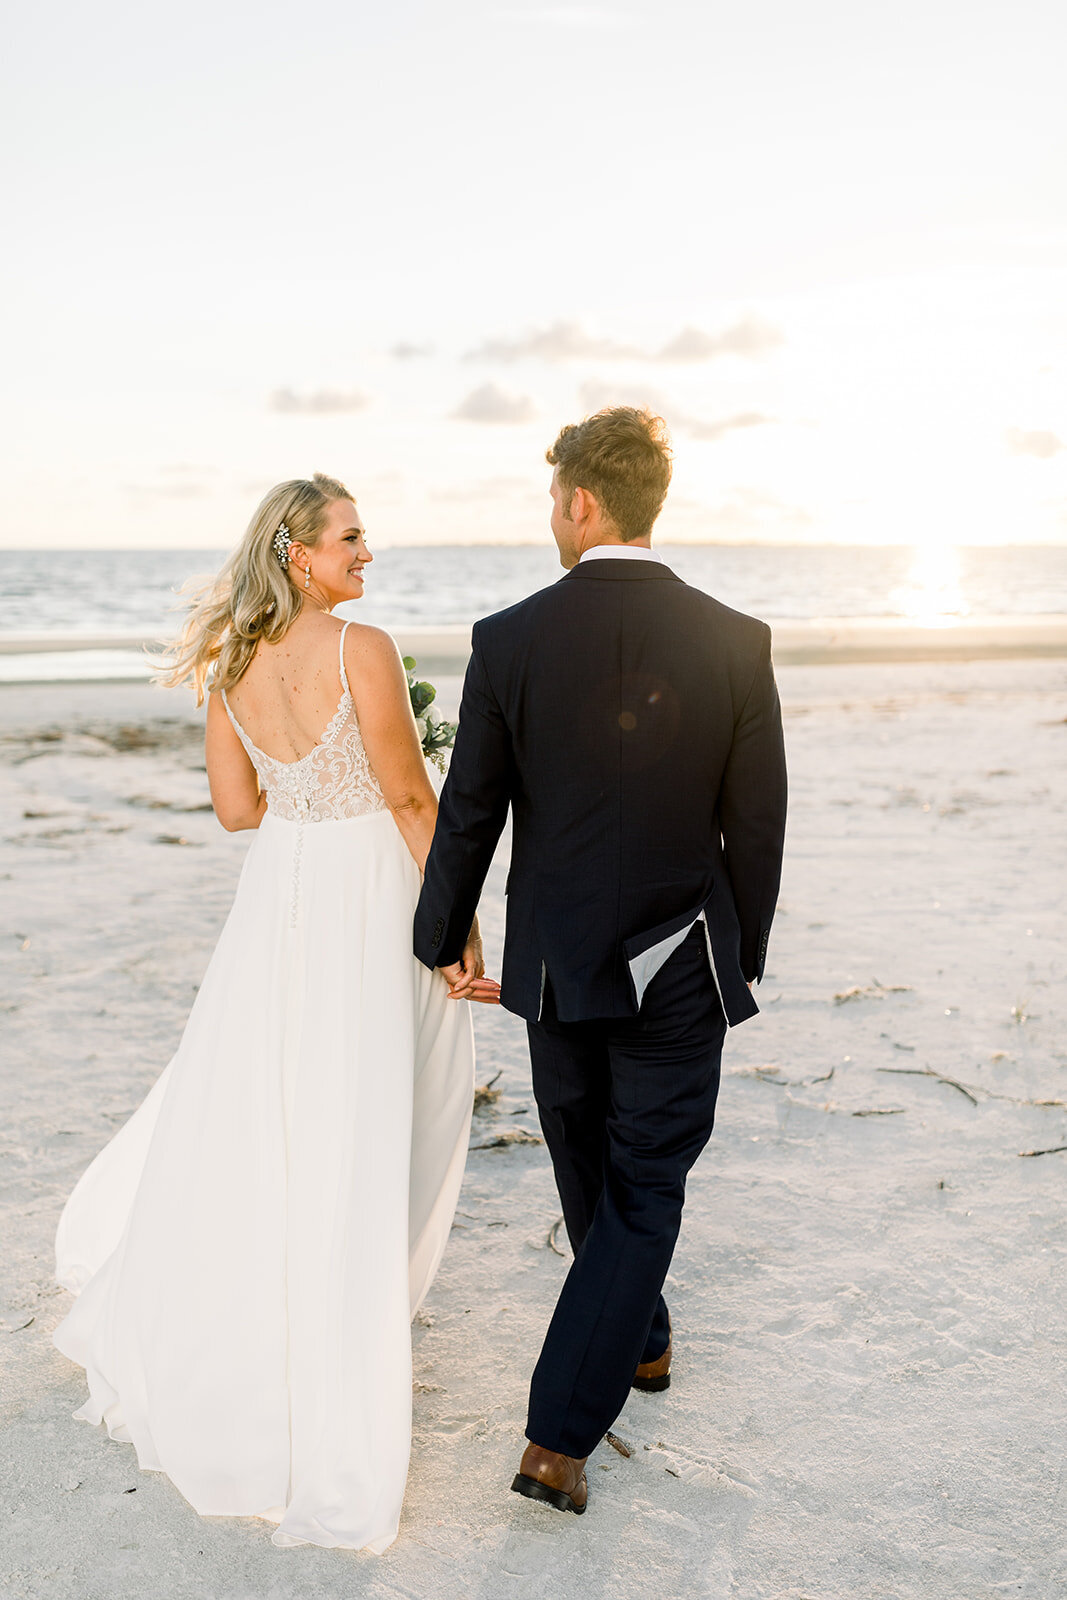 alex-mike-bowditch-beach-fort-myers-wedding-photos-1307